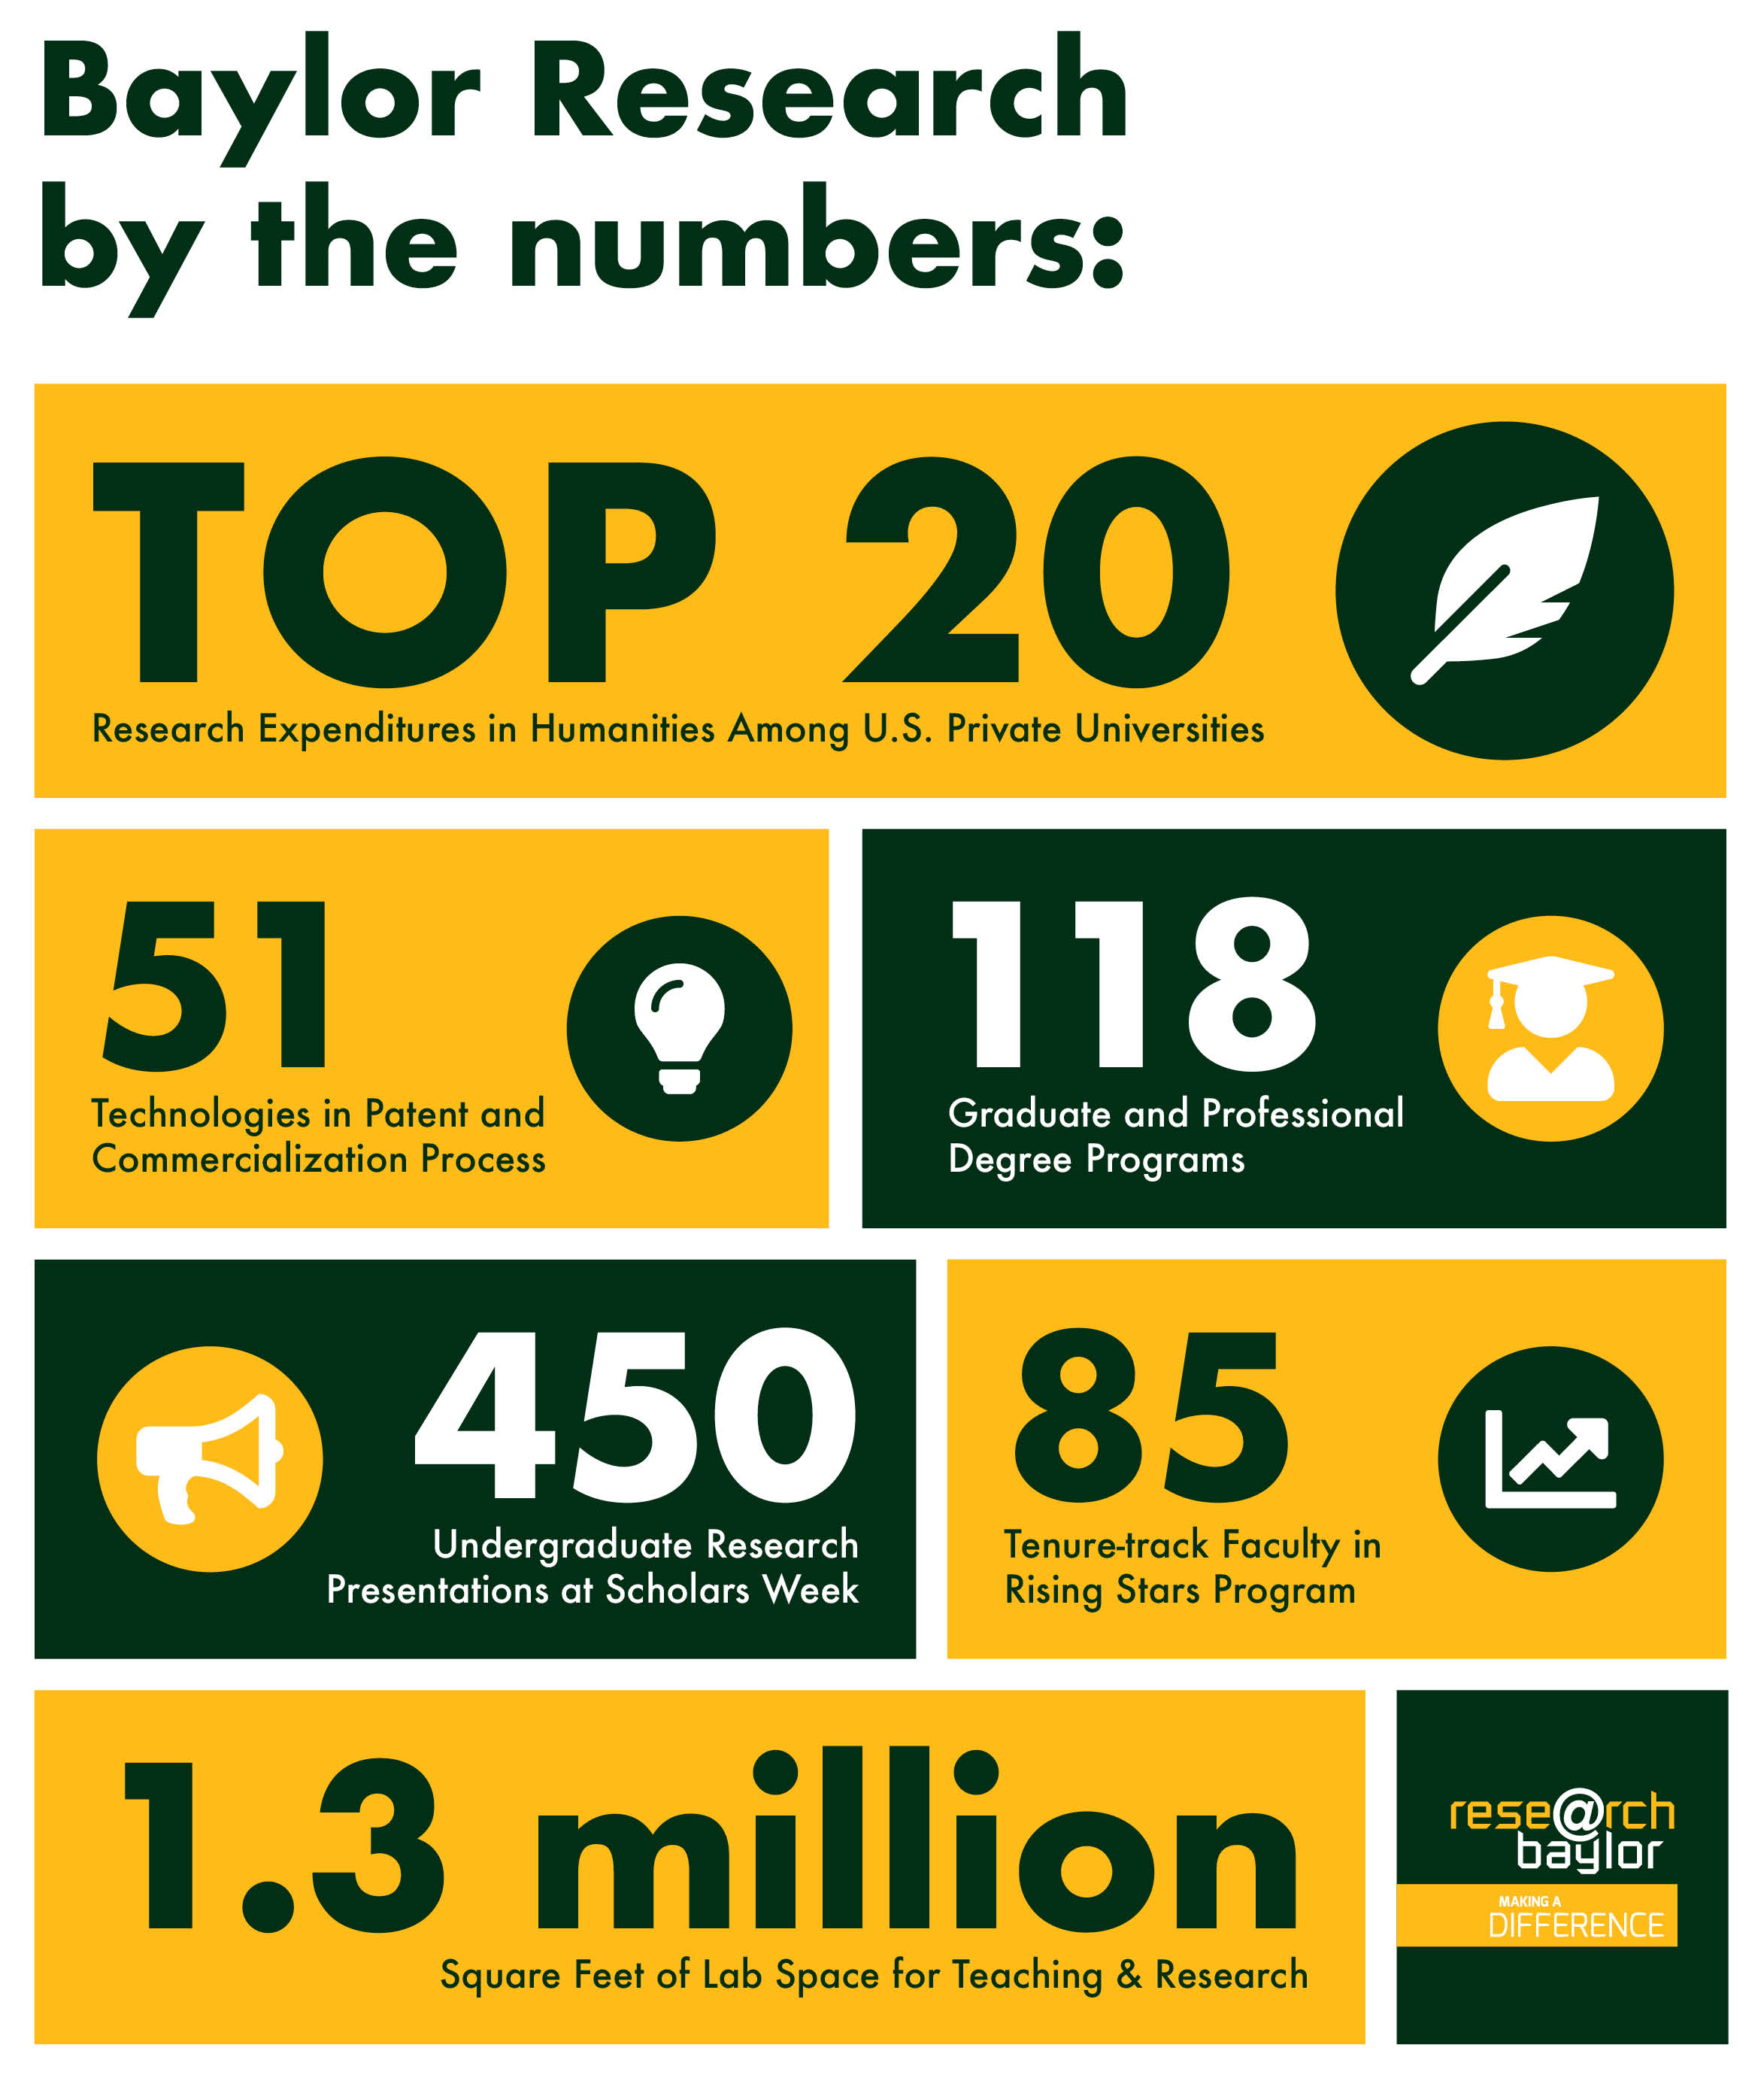 baylor-research-by-the-numbers